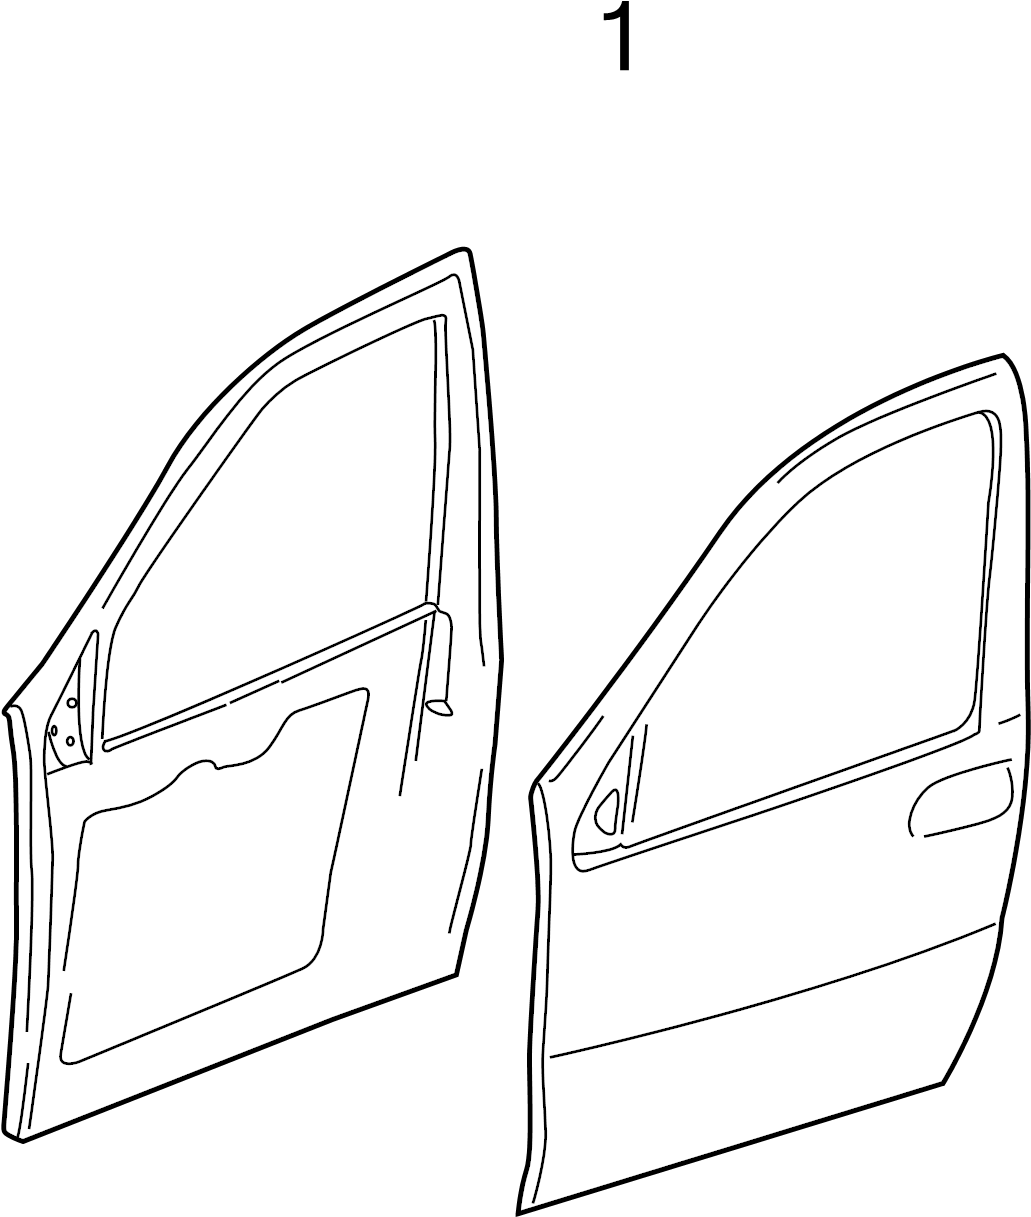 2005 pontiac montana sv6 parts diagrams